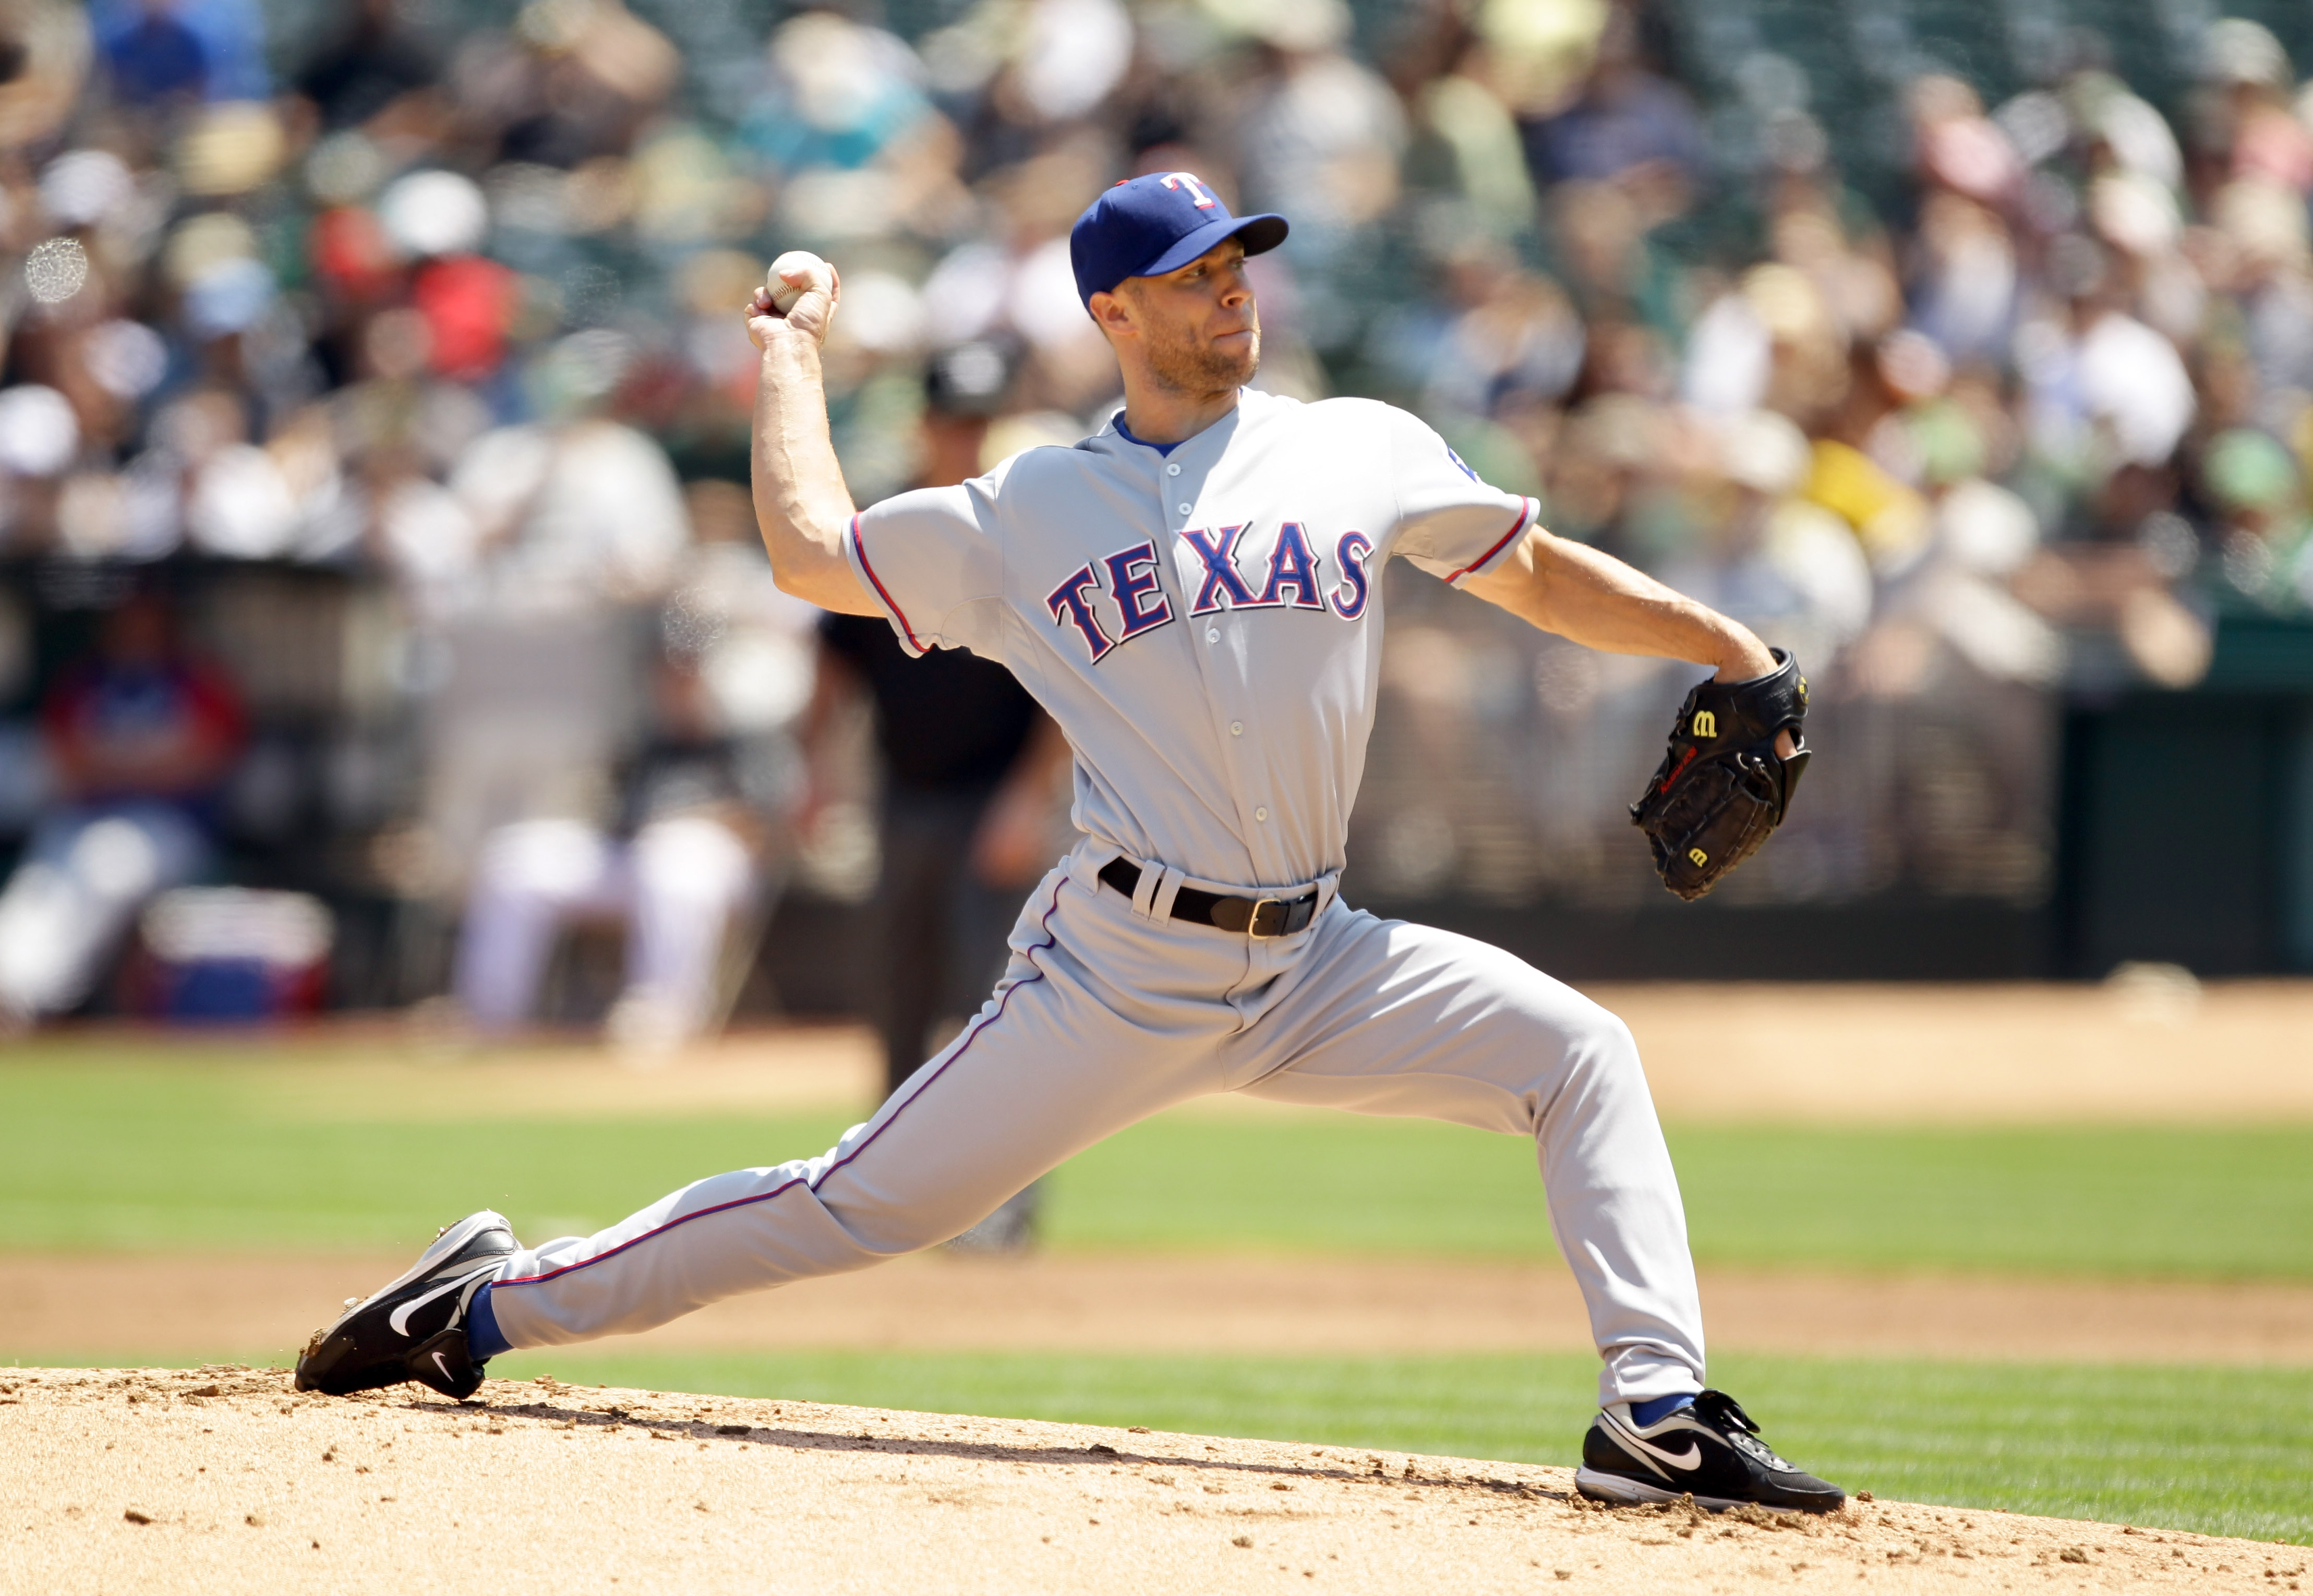 OAKLAND, CA - AUGUST 07:  Rich Harden #40 of the Texas Rangers pitches against the Oakland Athletics at the Oakland-Alameda County Coliseum on August 7, 2010 in Oakland, California.  (Photo by Ezra Shaw/Getty Images)